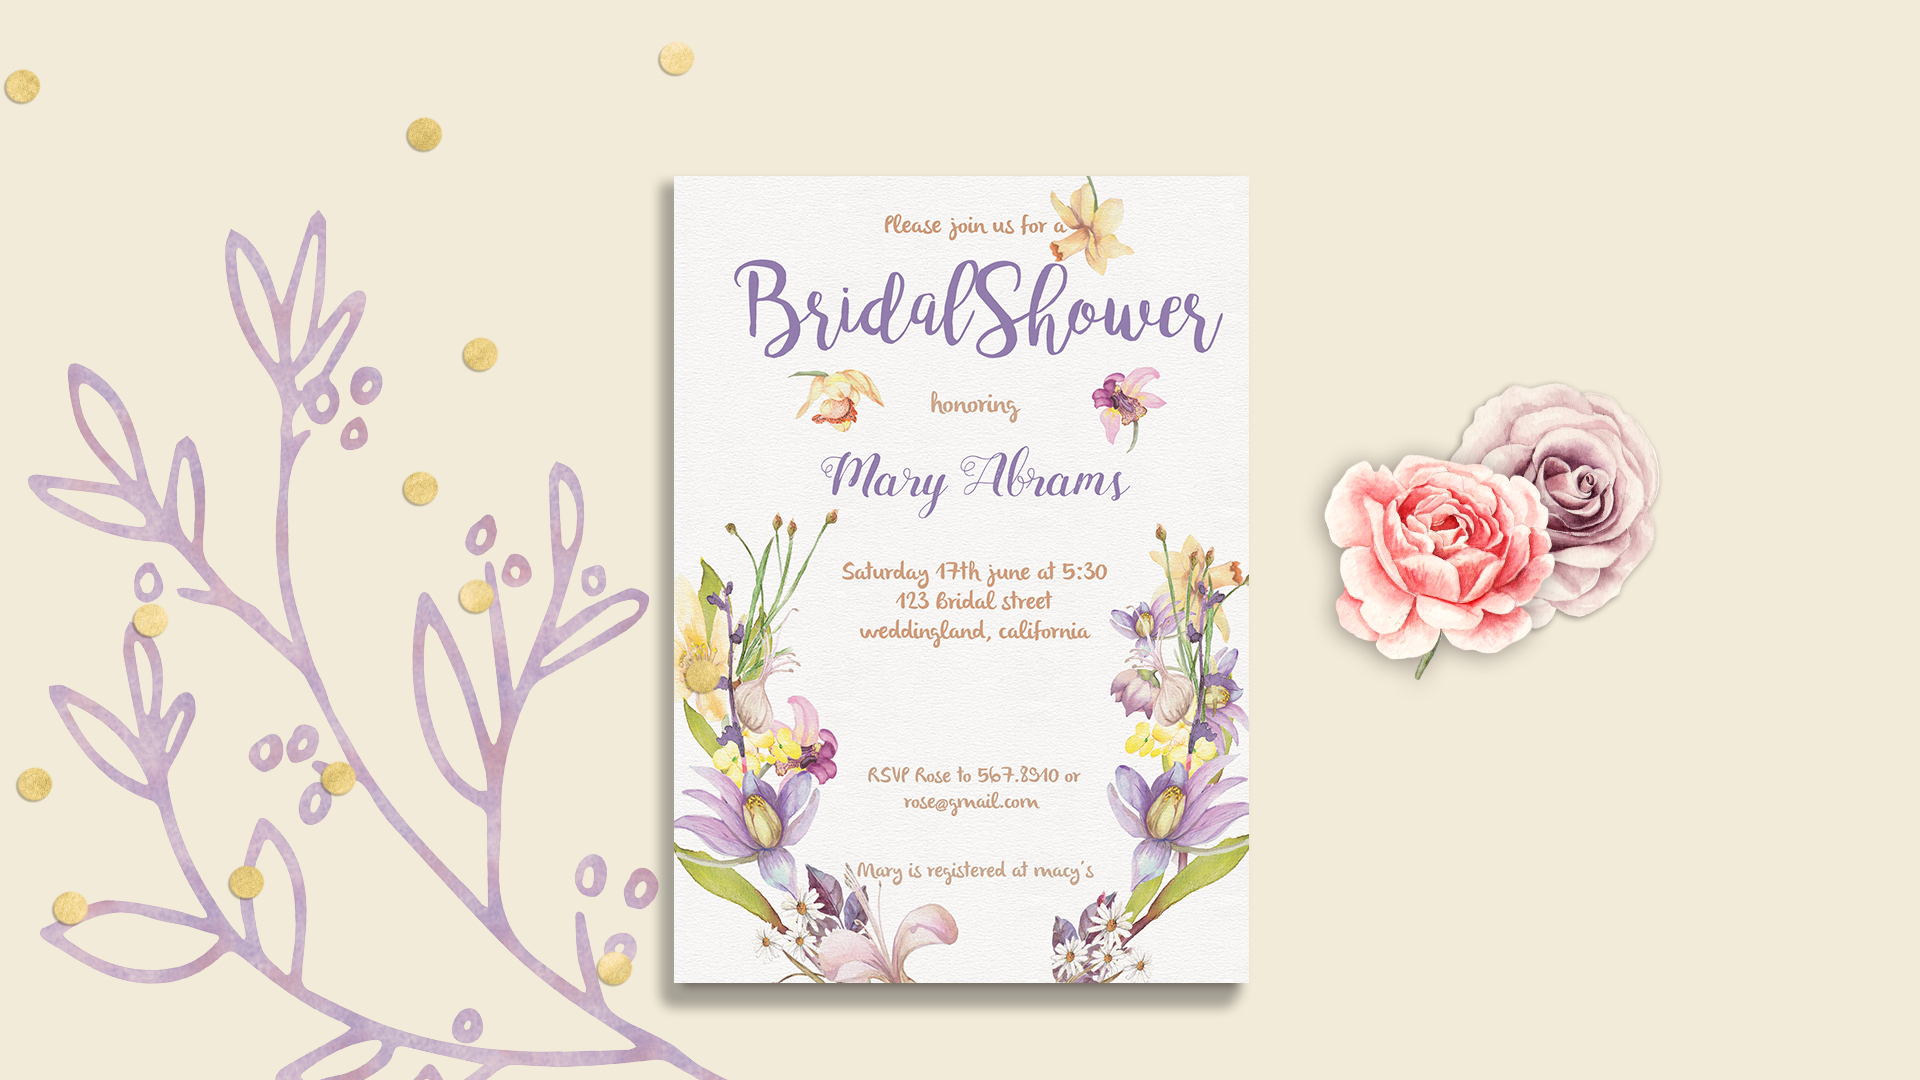 Floral Bridal Shower Invitation Card Template example image 1